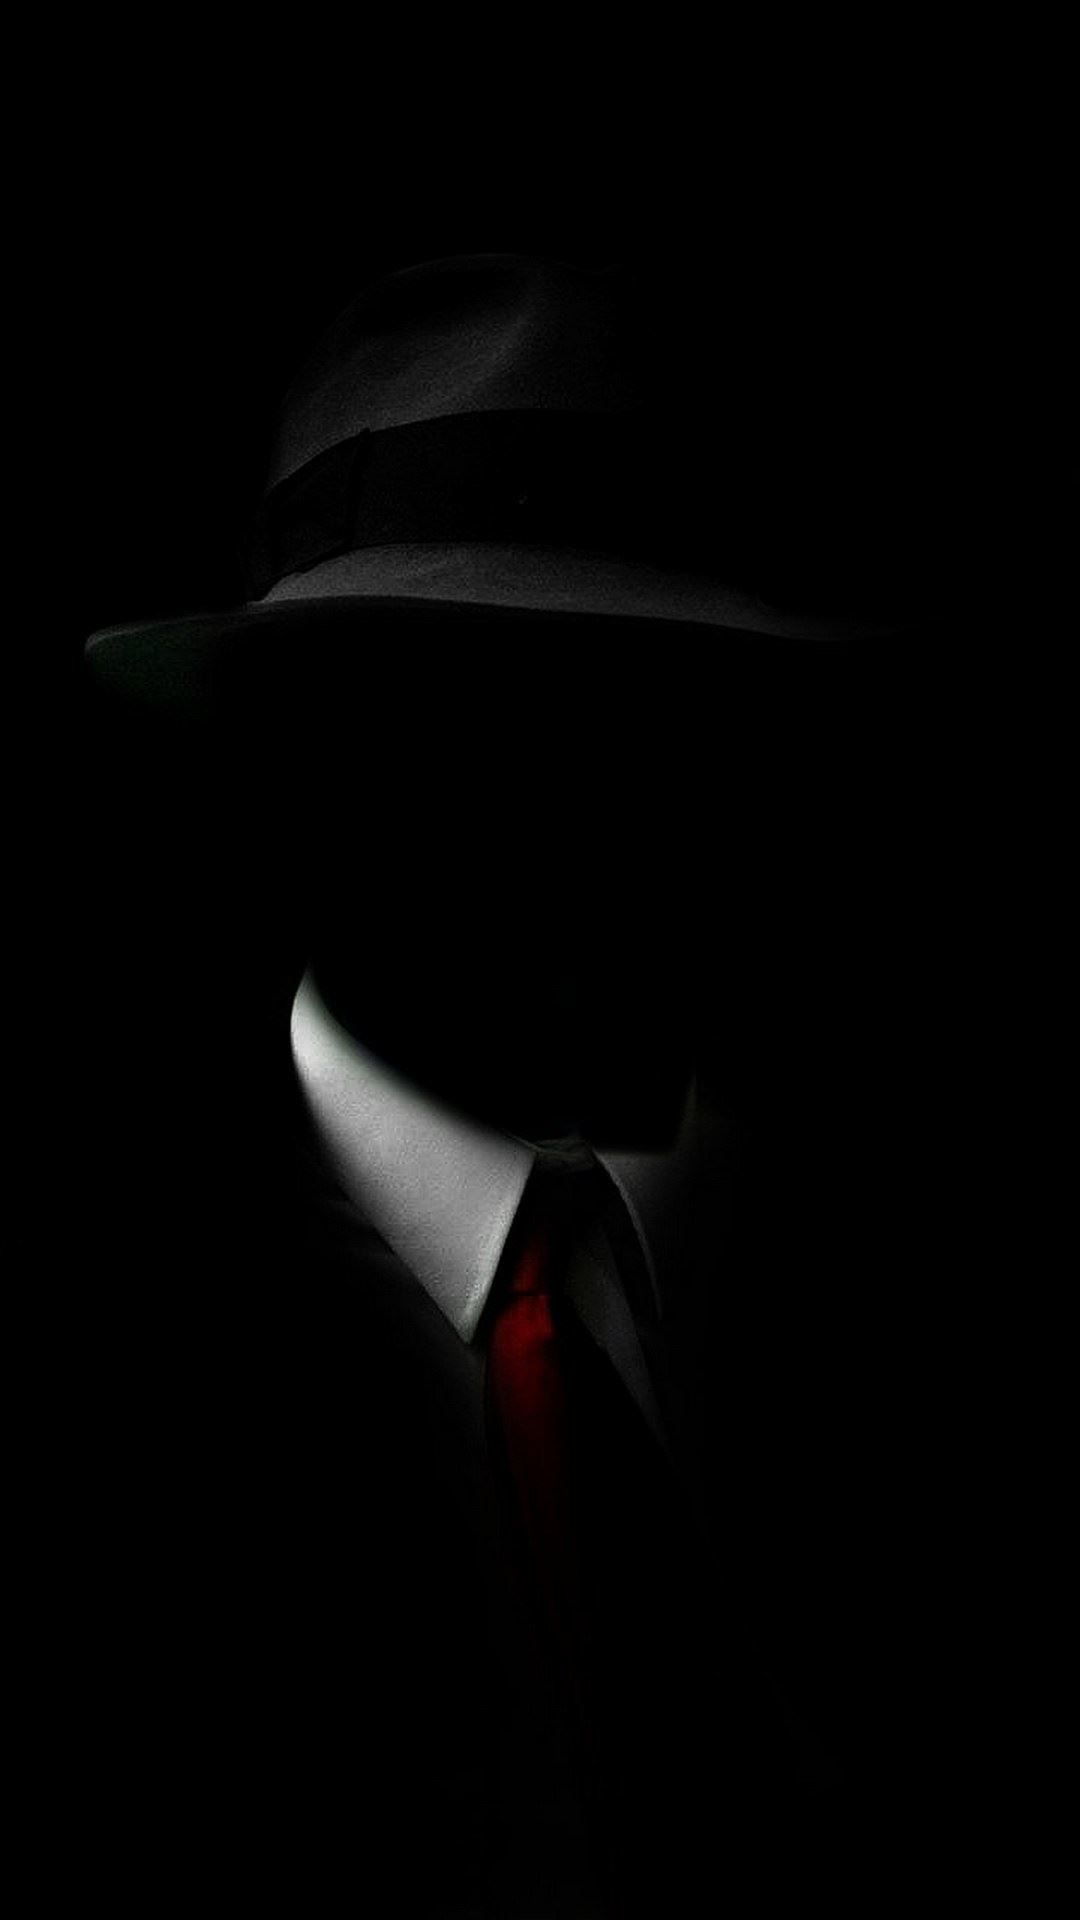 shadow man black suit hat red tie iphone 6 plus hd